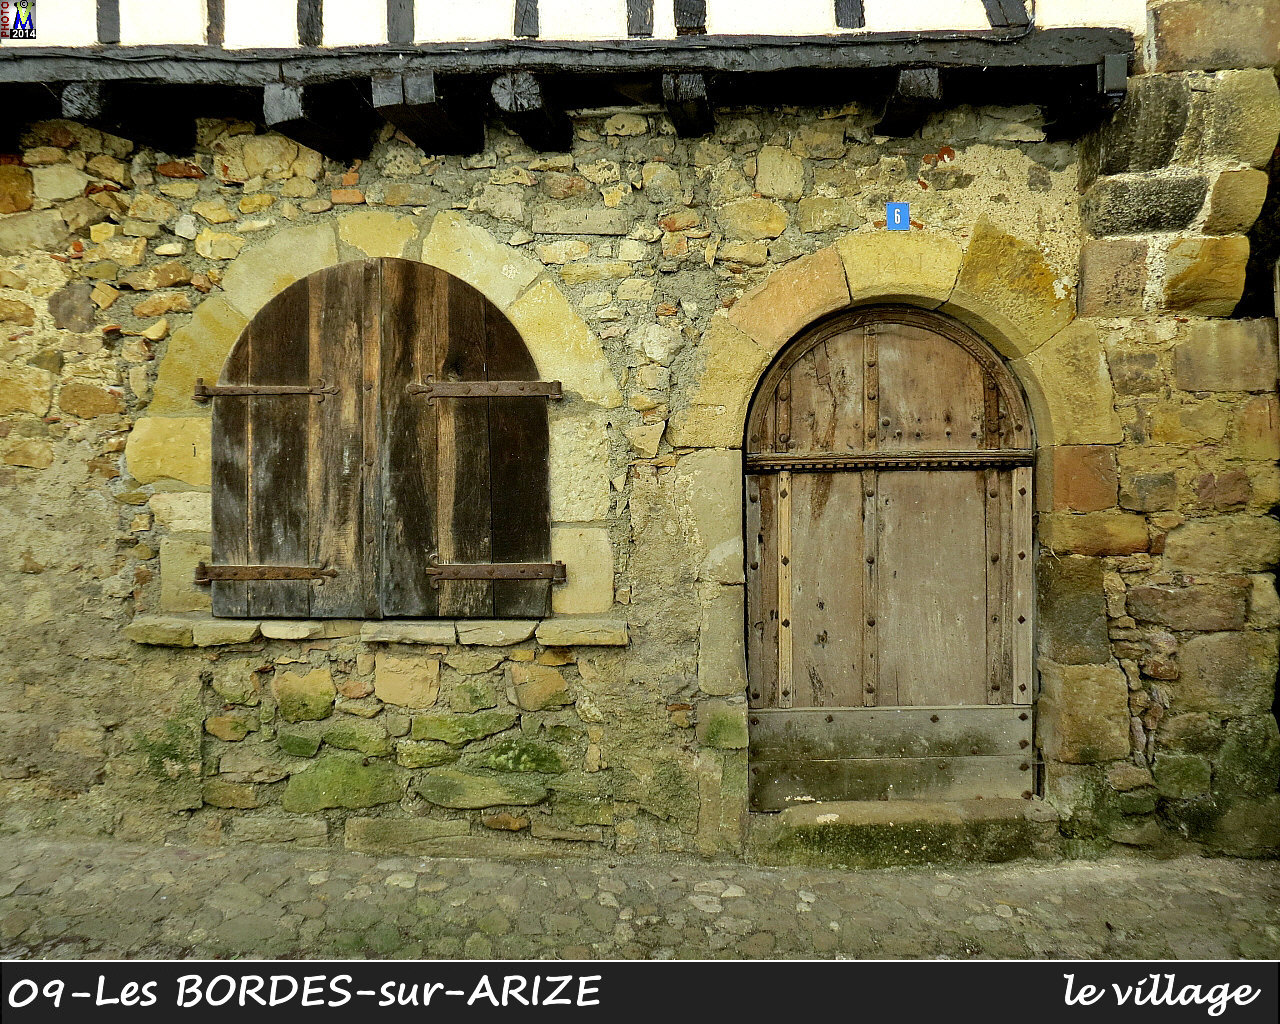 09BORDES-ARIZE_village_108.jpg